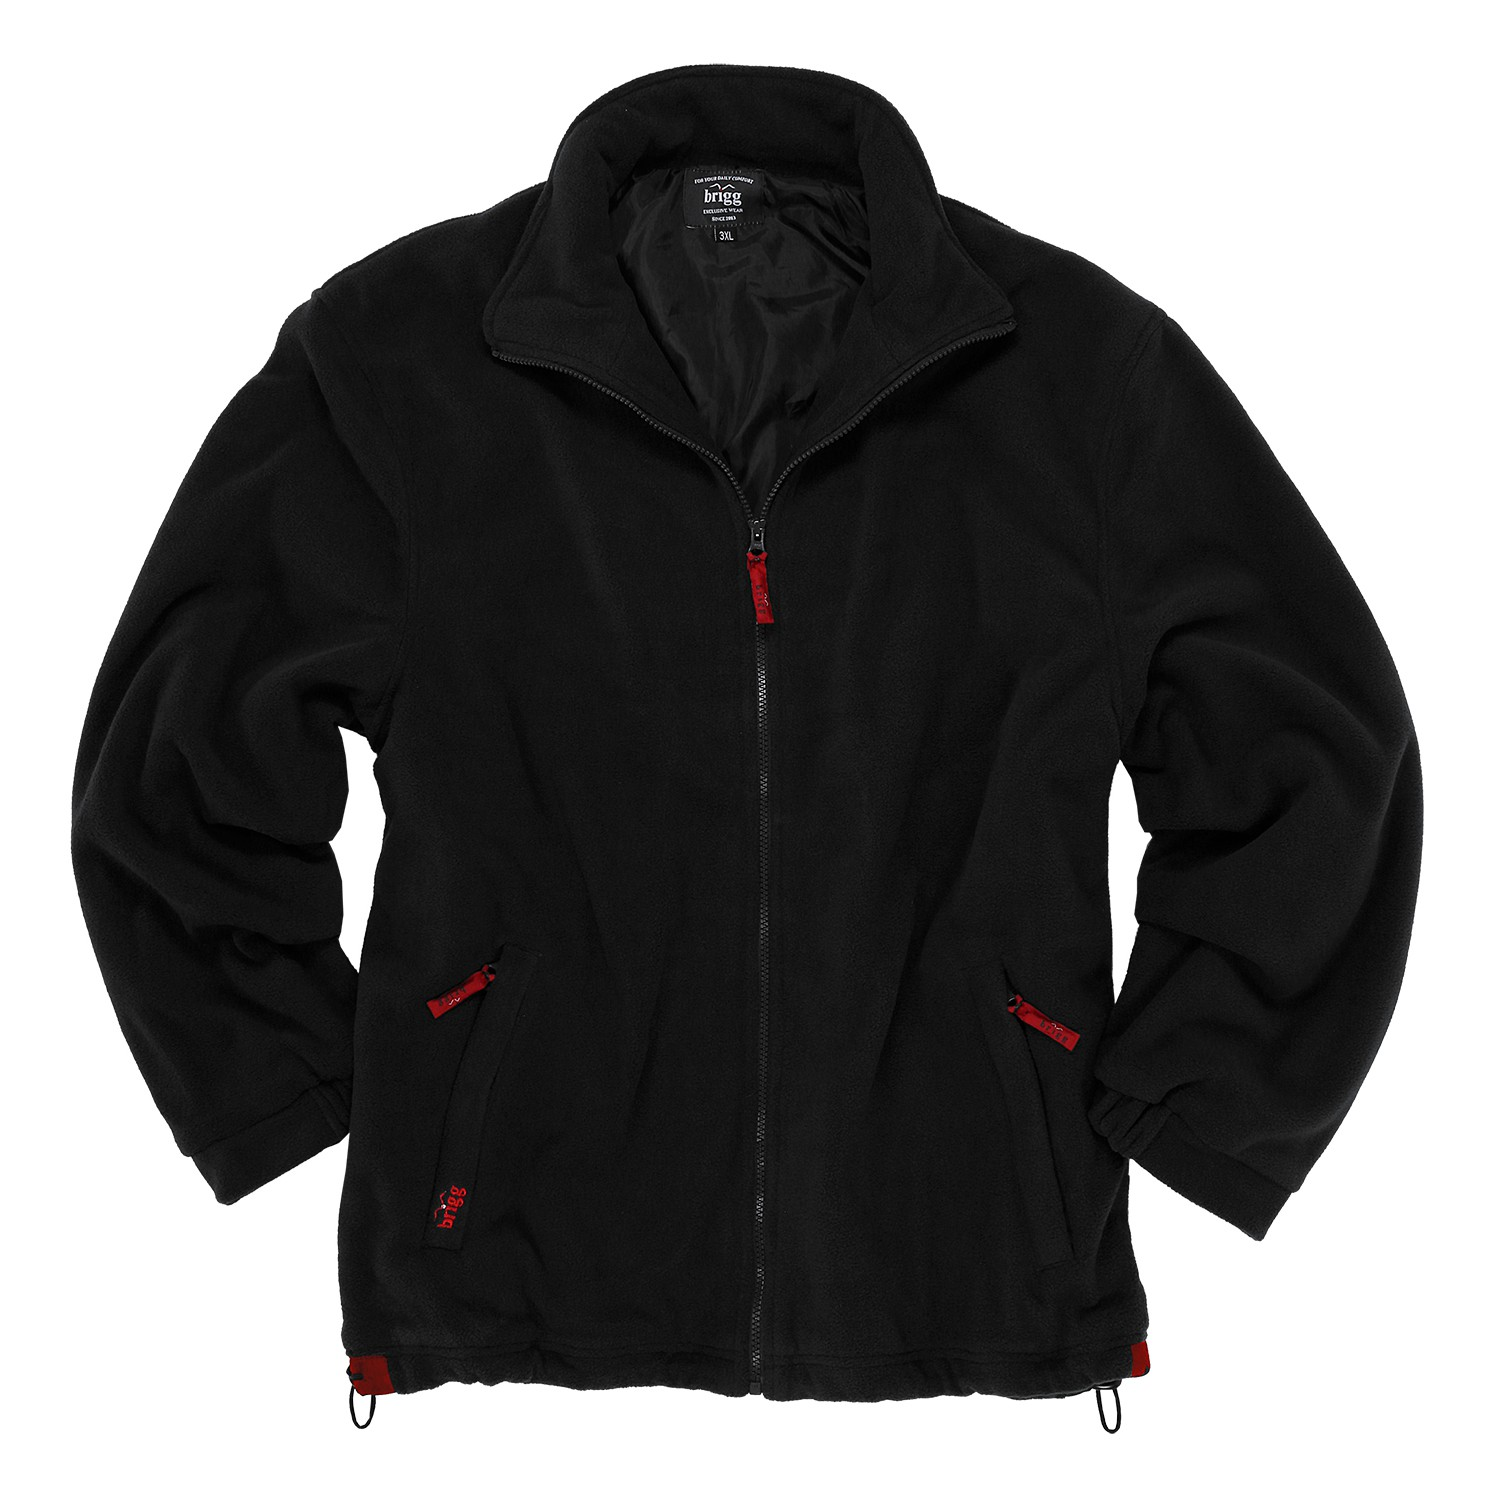 Detail Image to Fleece Jacket by Brigg, black, up to 14XL